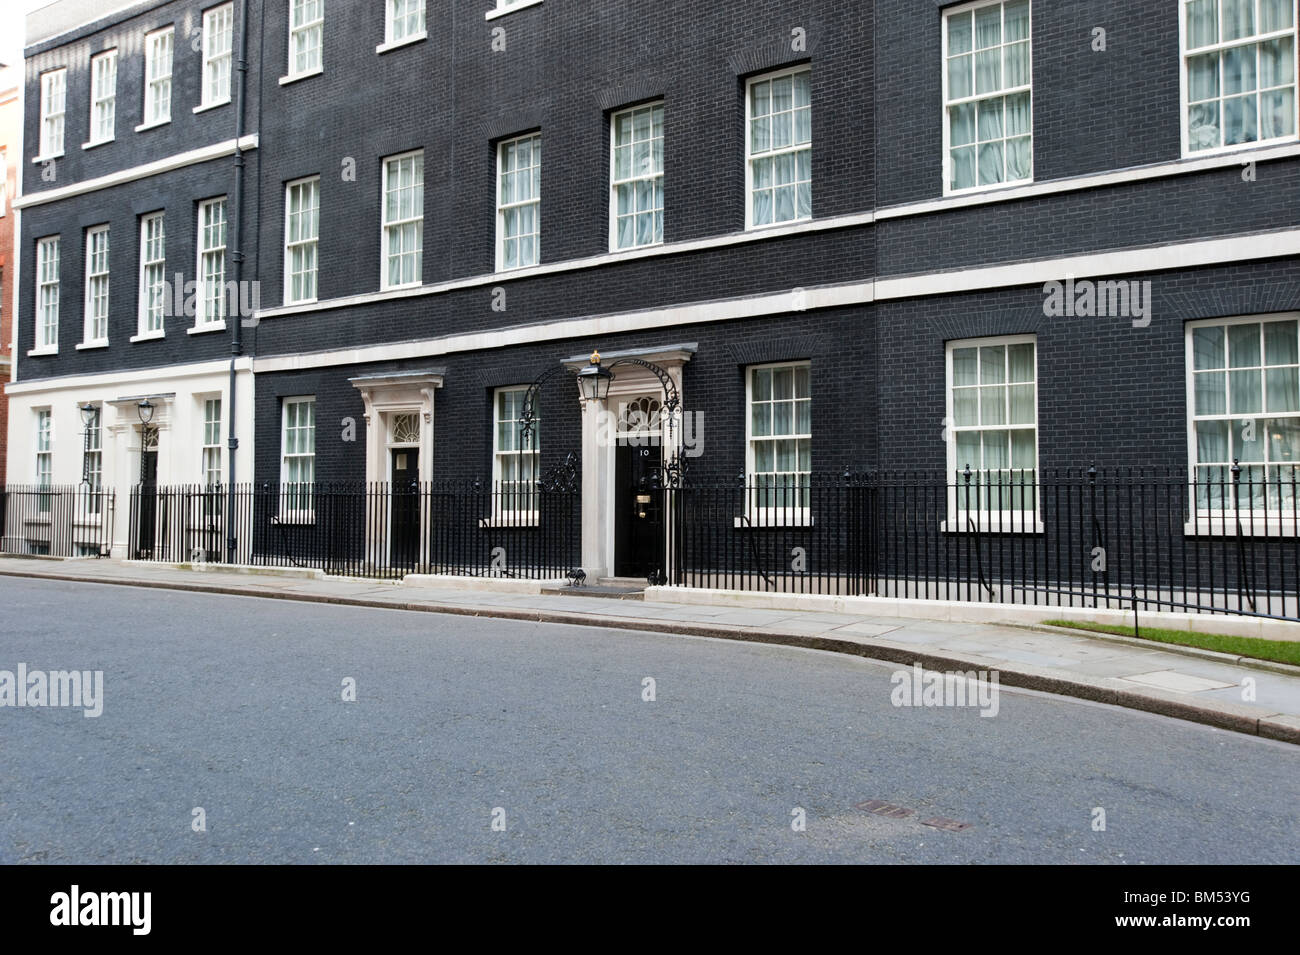 10 Downing Street, London, England, UK Photo Stock